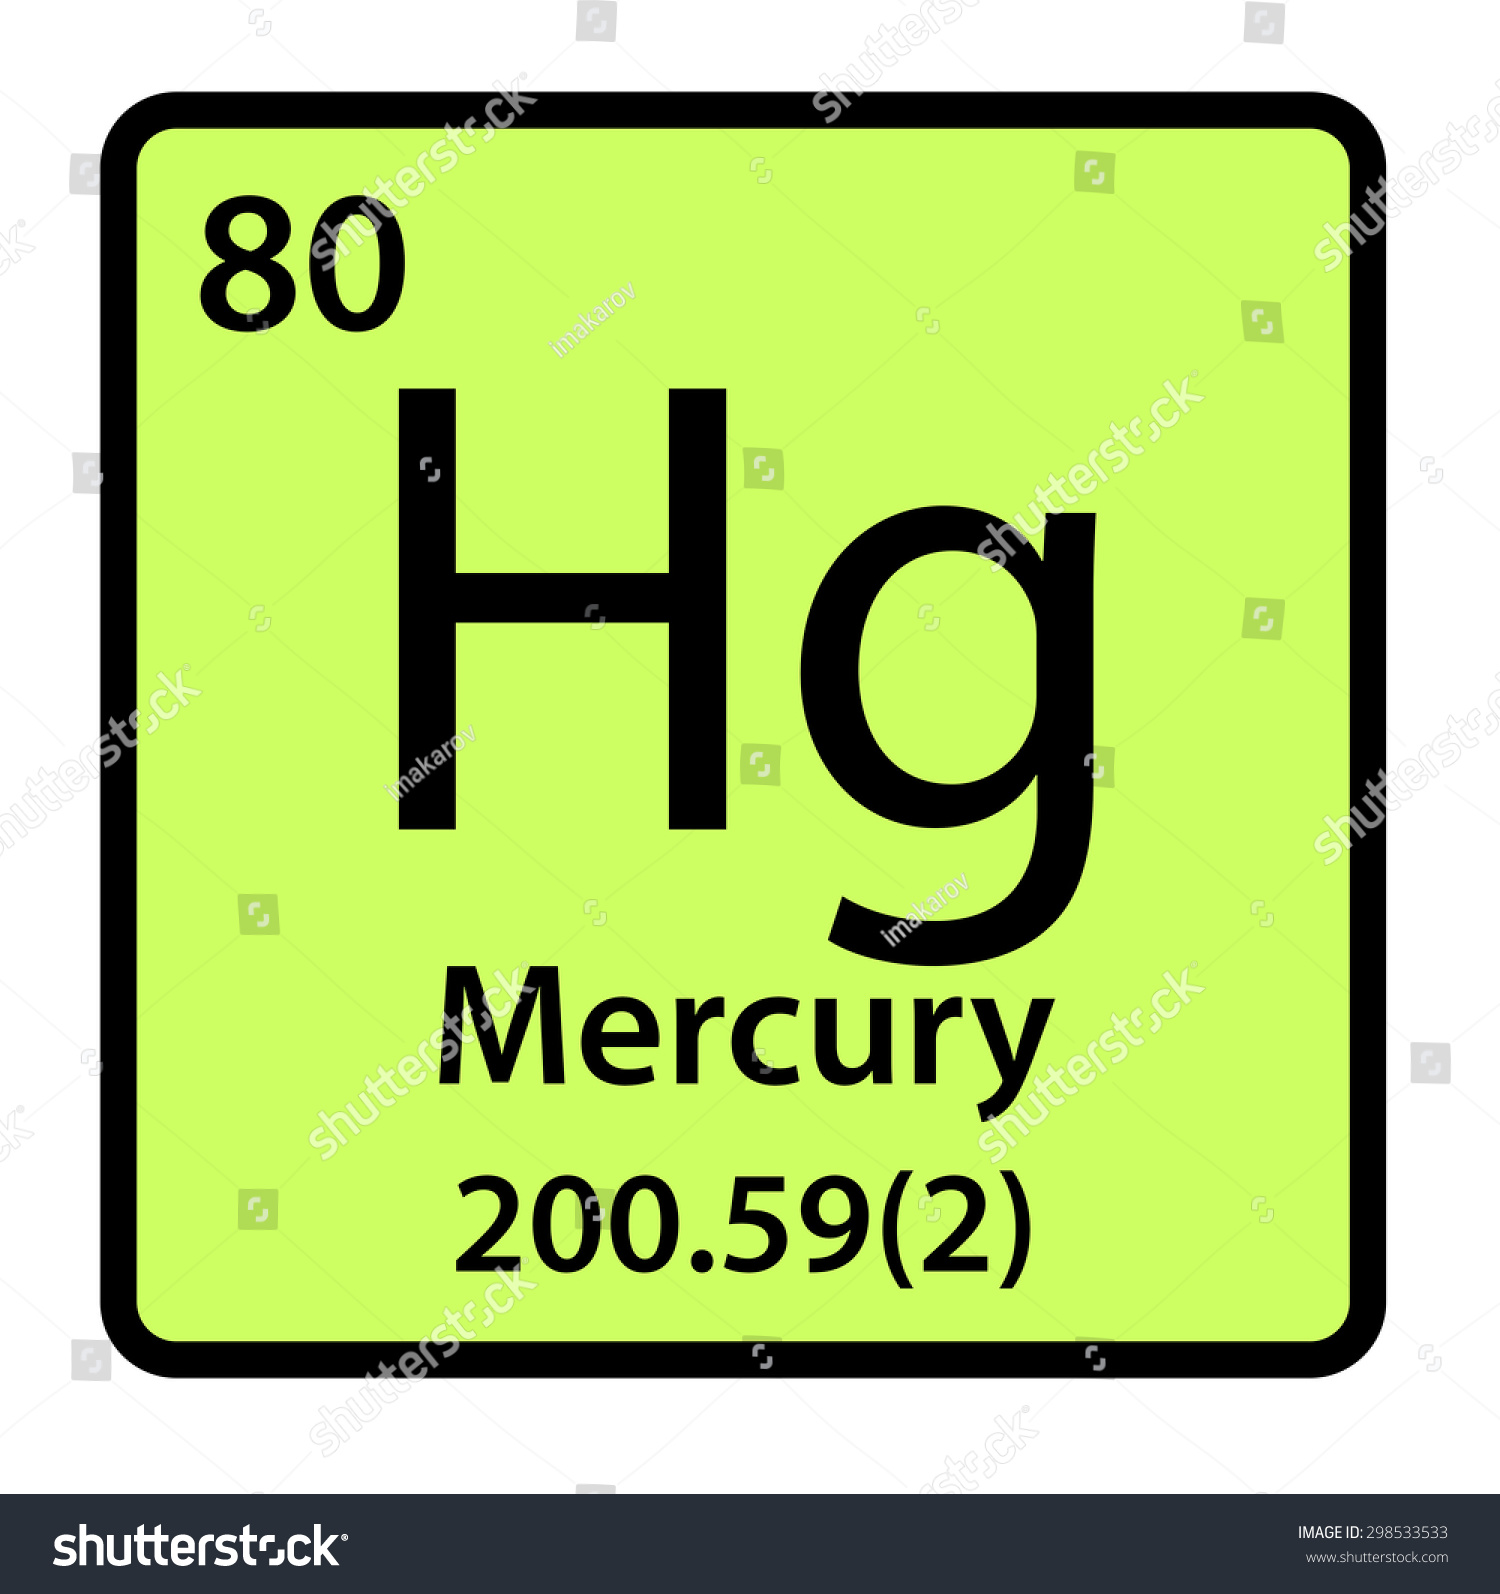 Periodic table symbol for mercury image collections periodic element mercury periodic table stock illustration 298533533 element mercury of the periodic table gamestrikefo image collections gamestrikefo Images